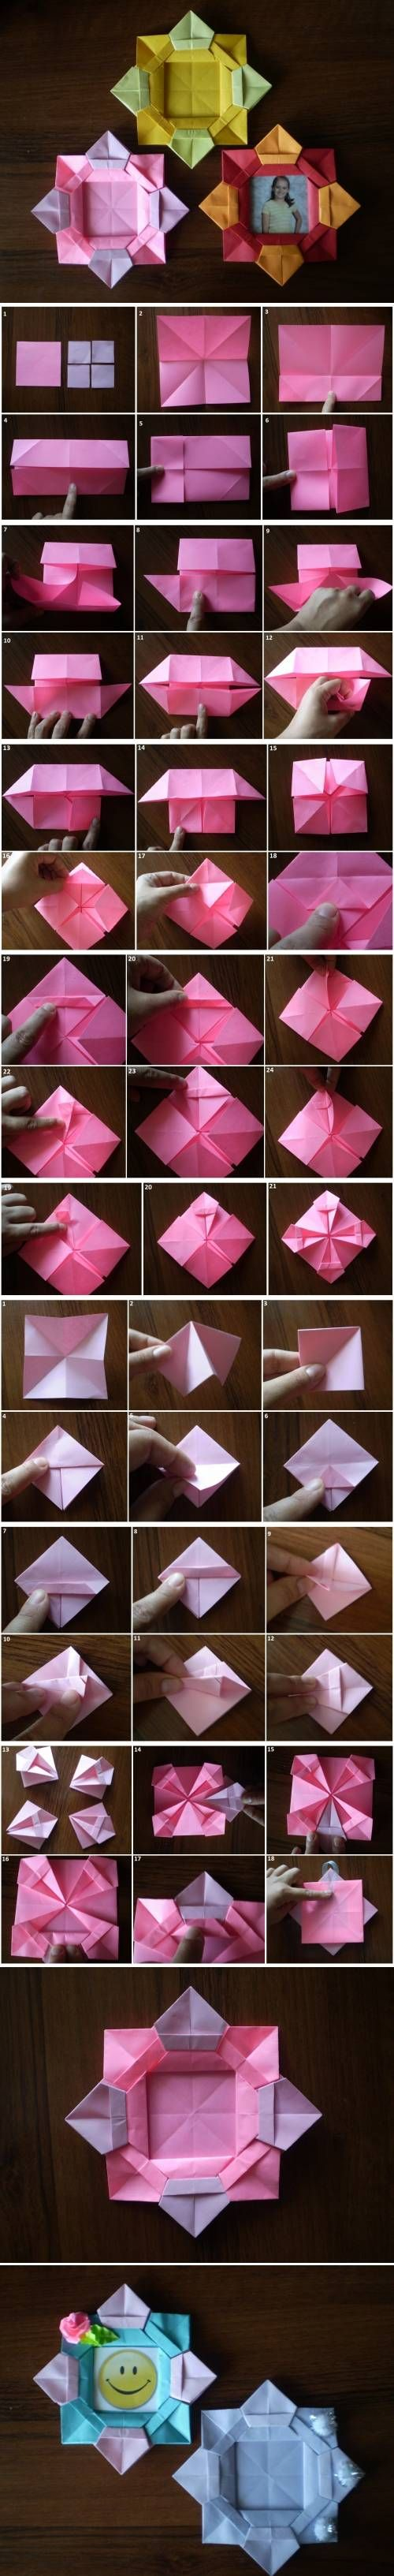 How To Make Origami Flower Picture Frame Step By Step Diy